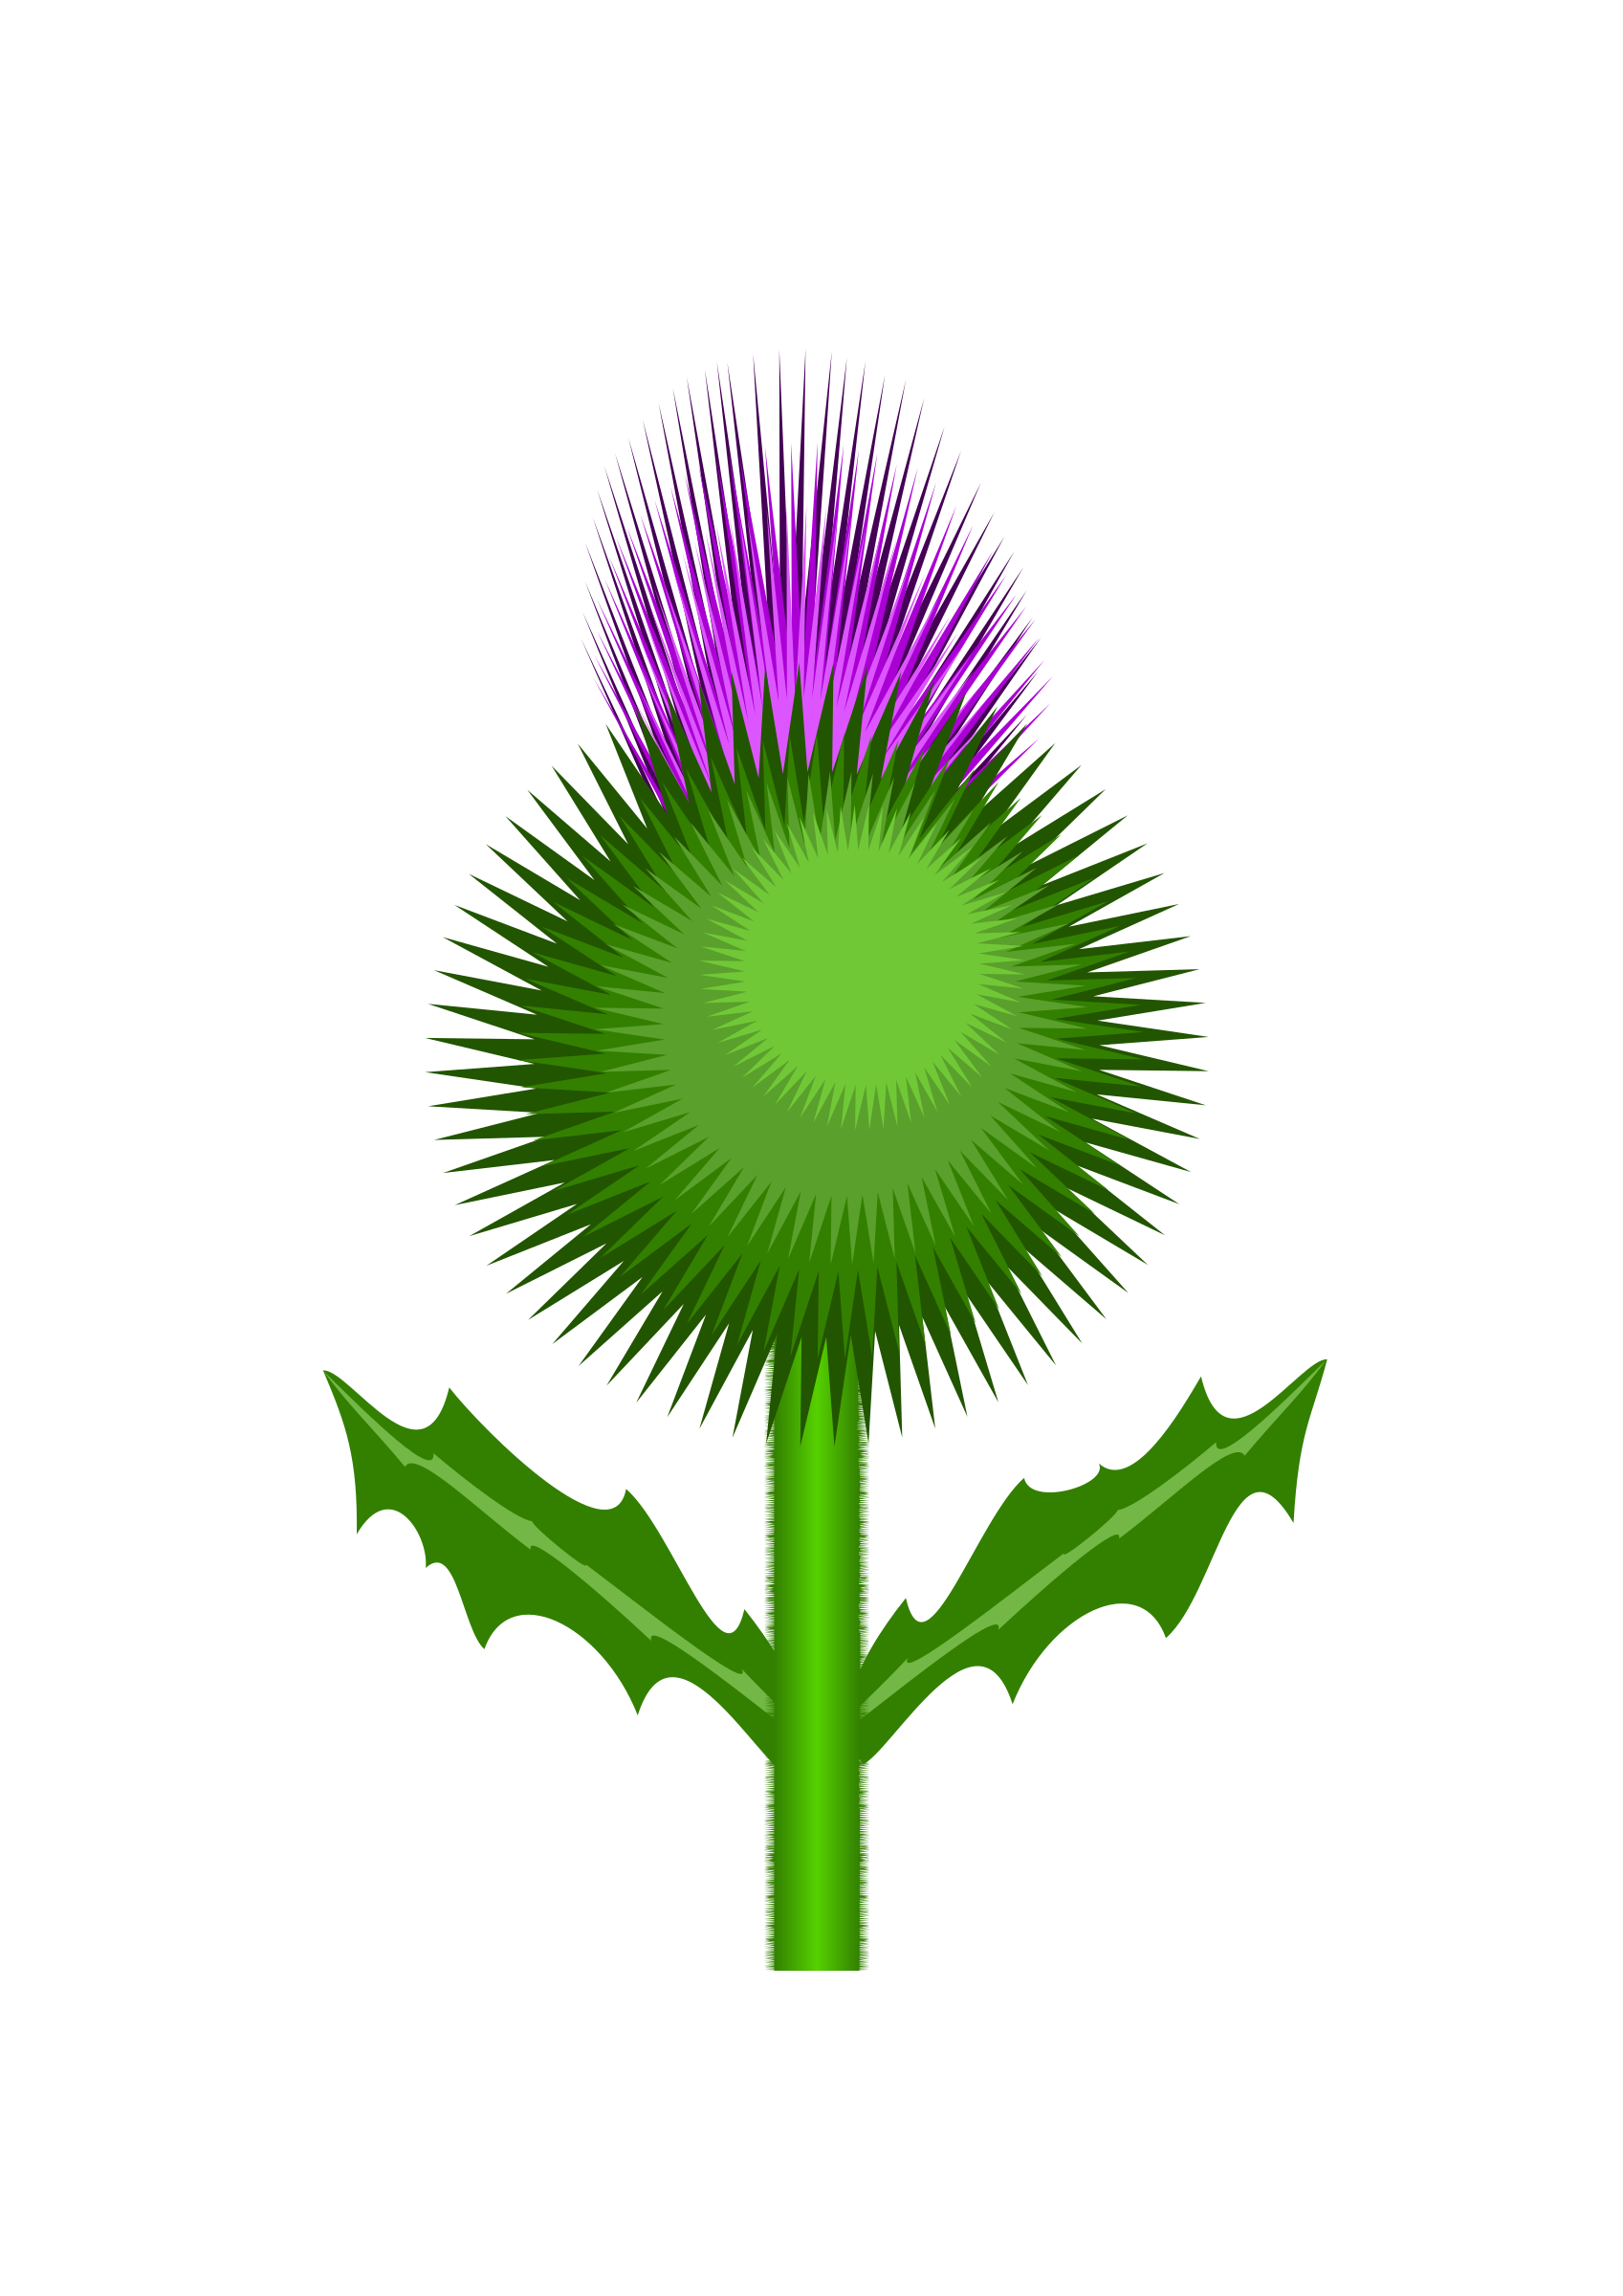 Scottish Thistle by kevie